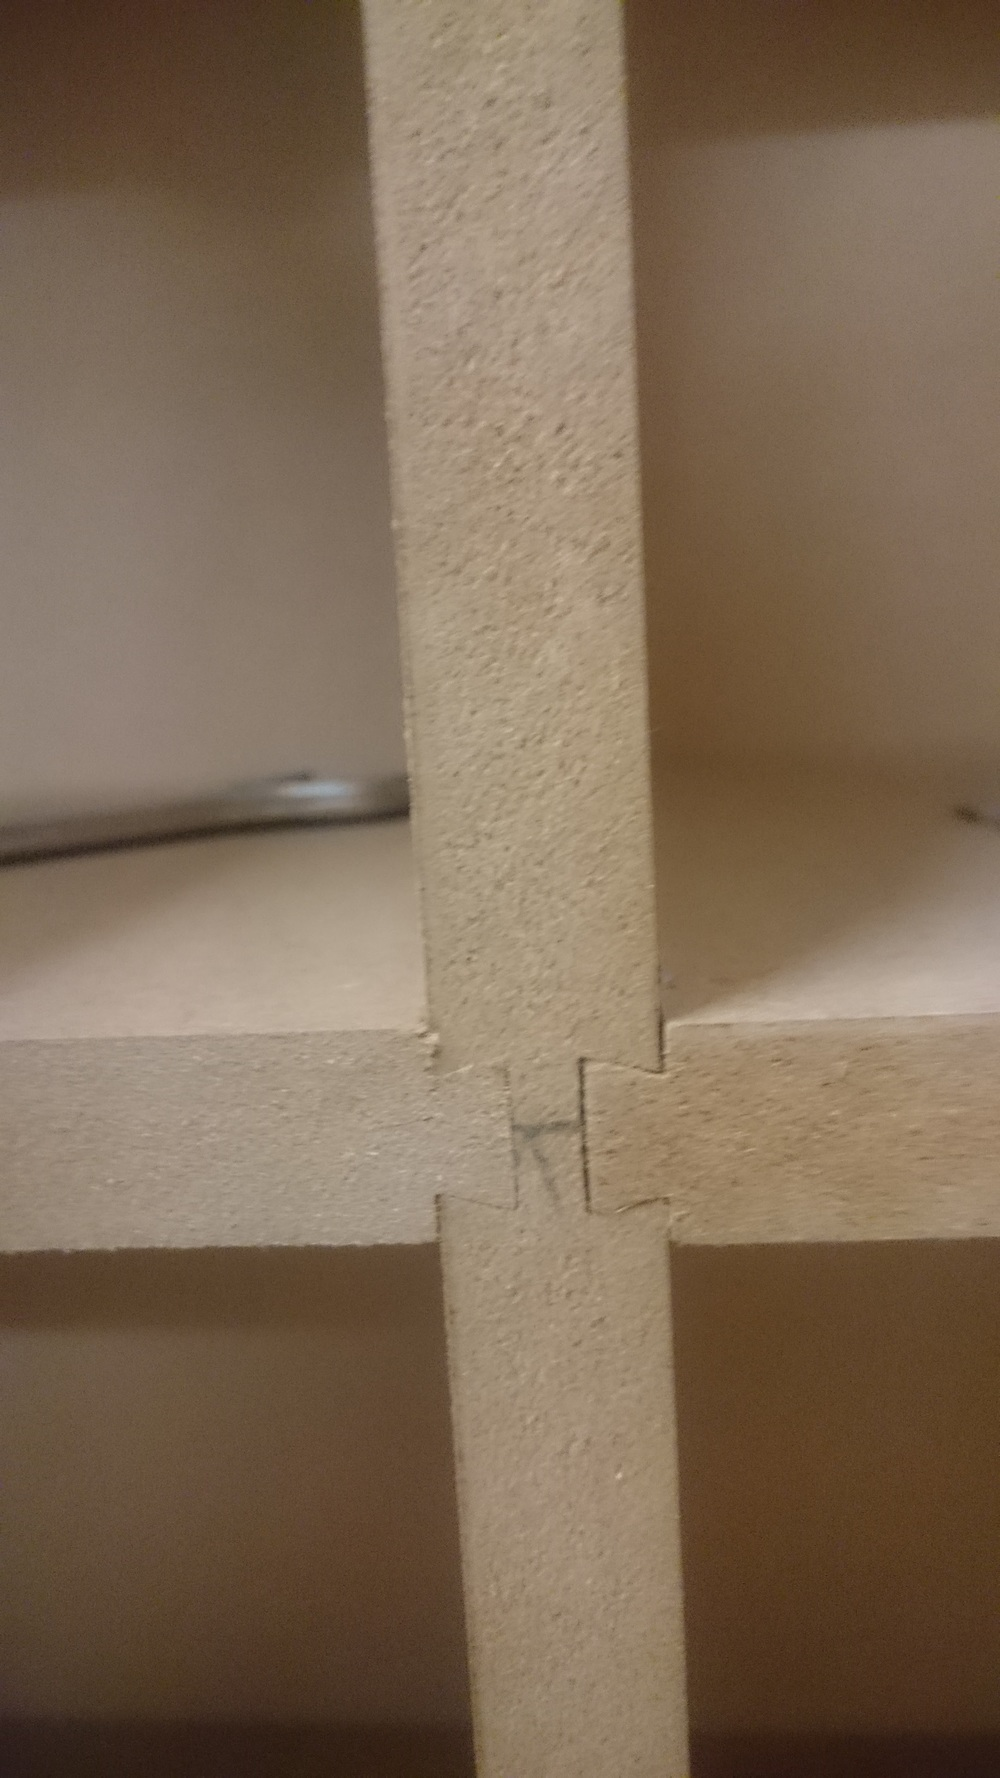 Here is one of the many meeting points of the sliding dovetails